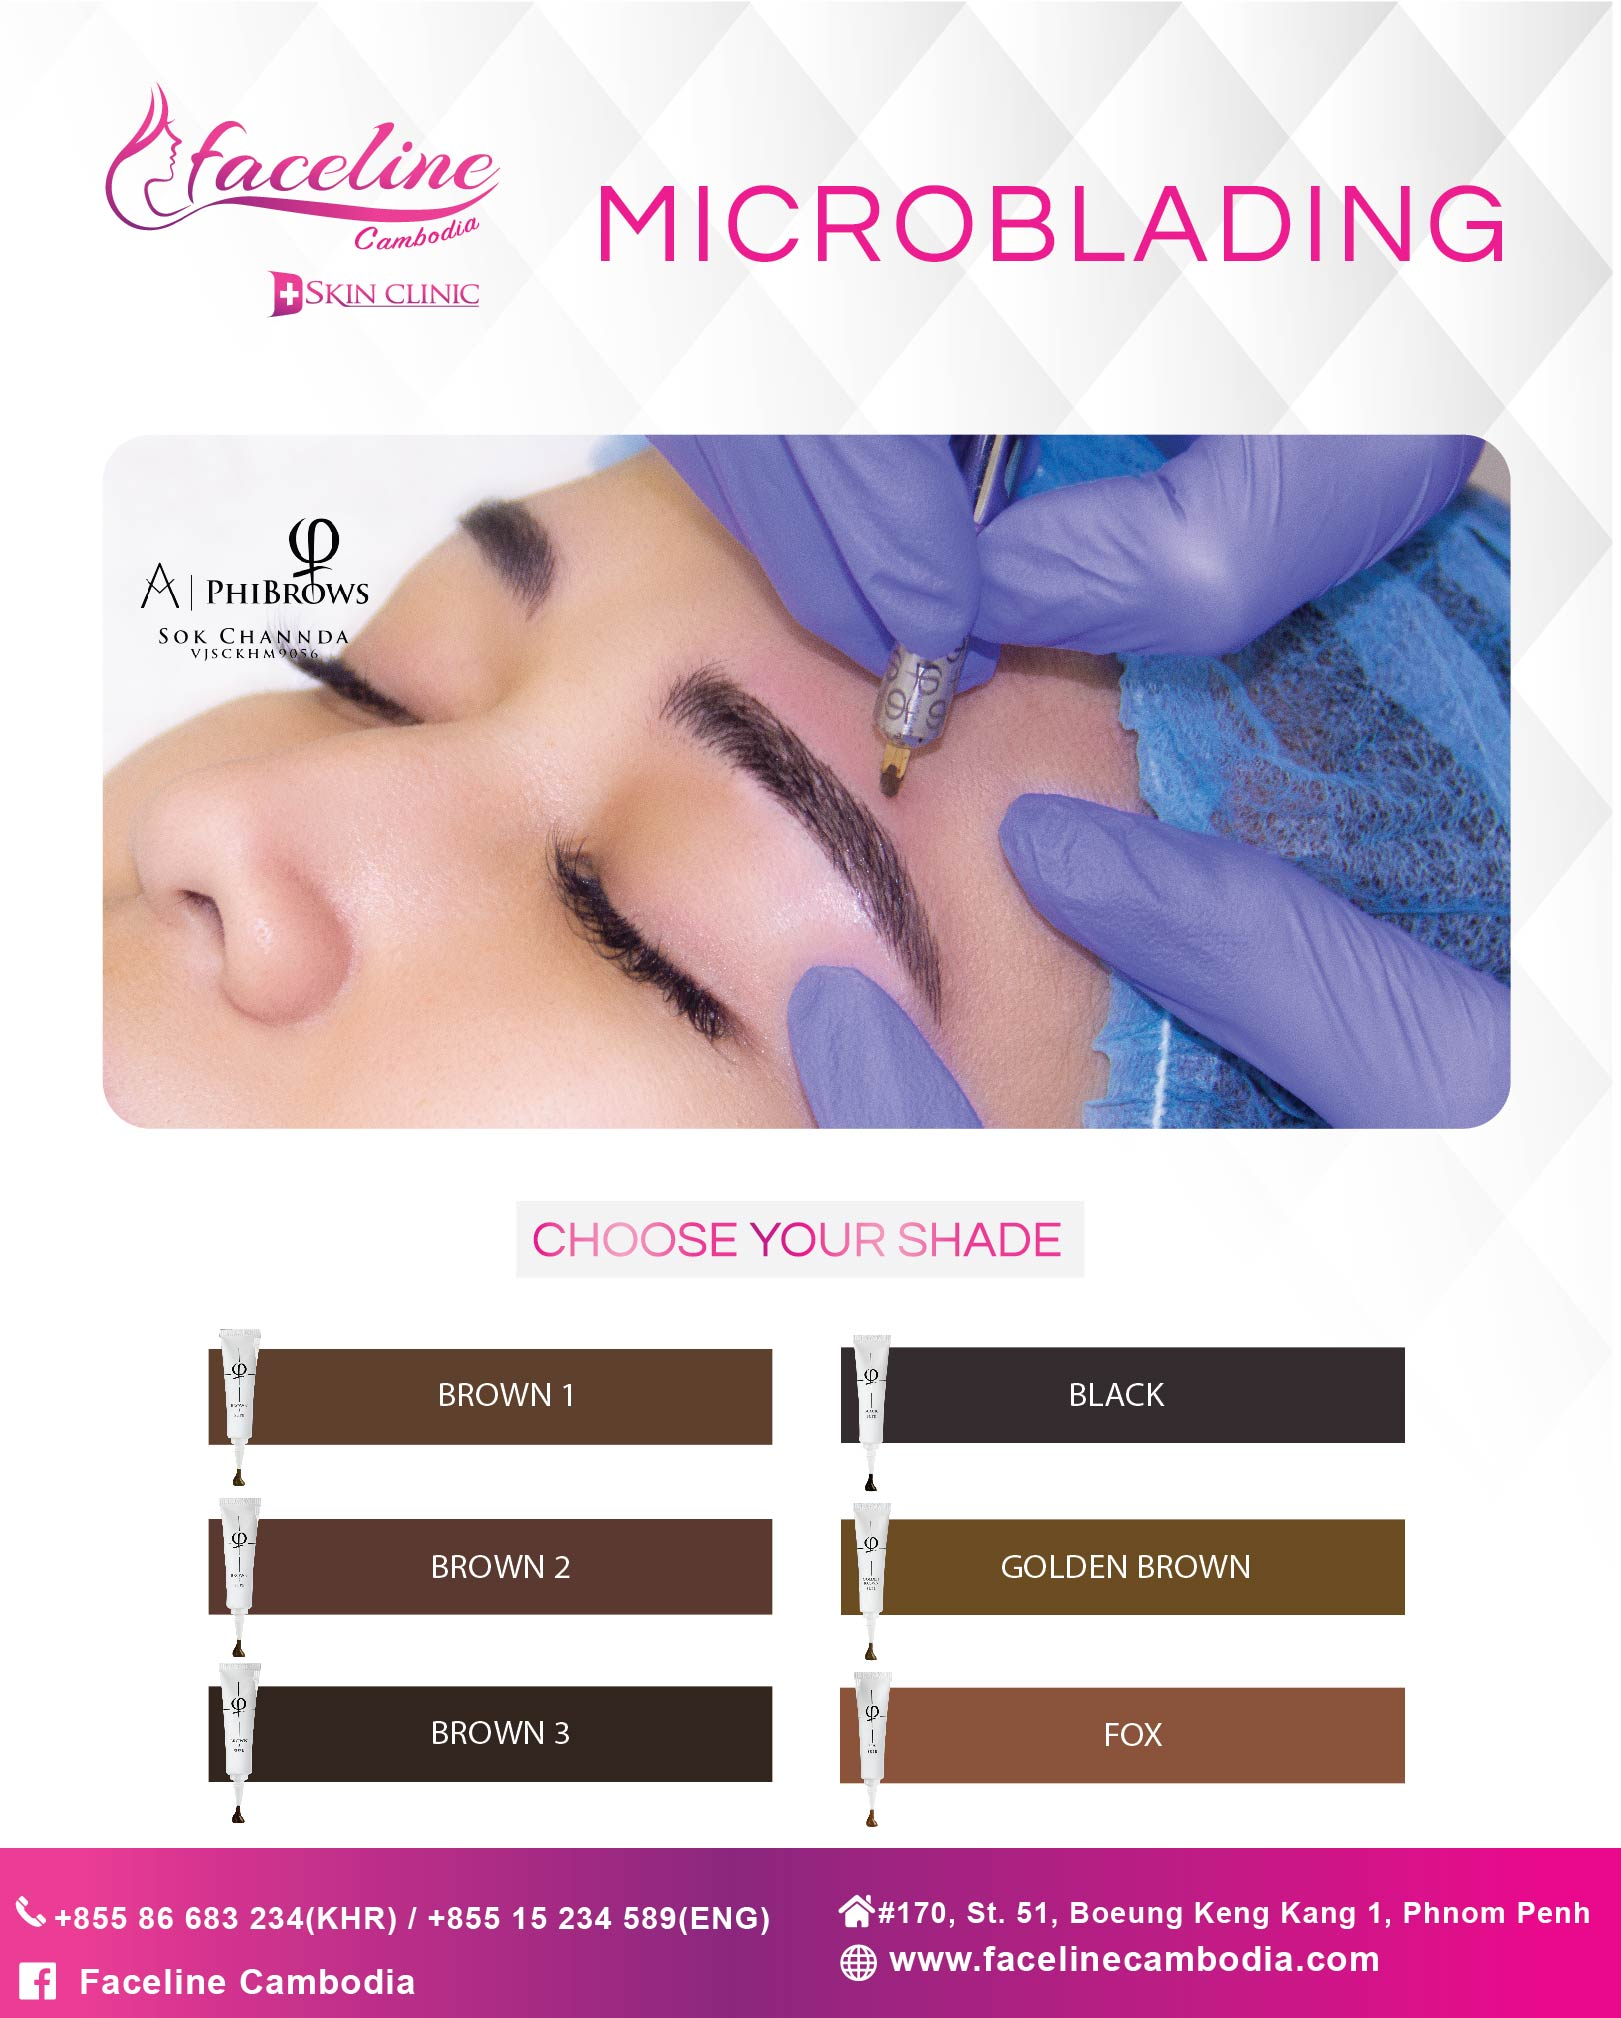 Things you need to know before Microblading procedure